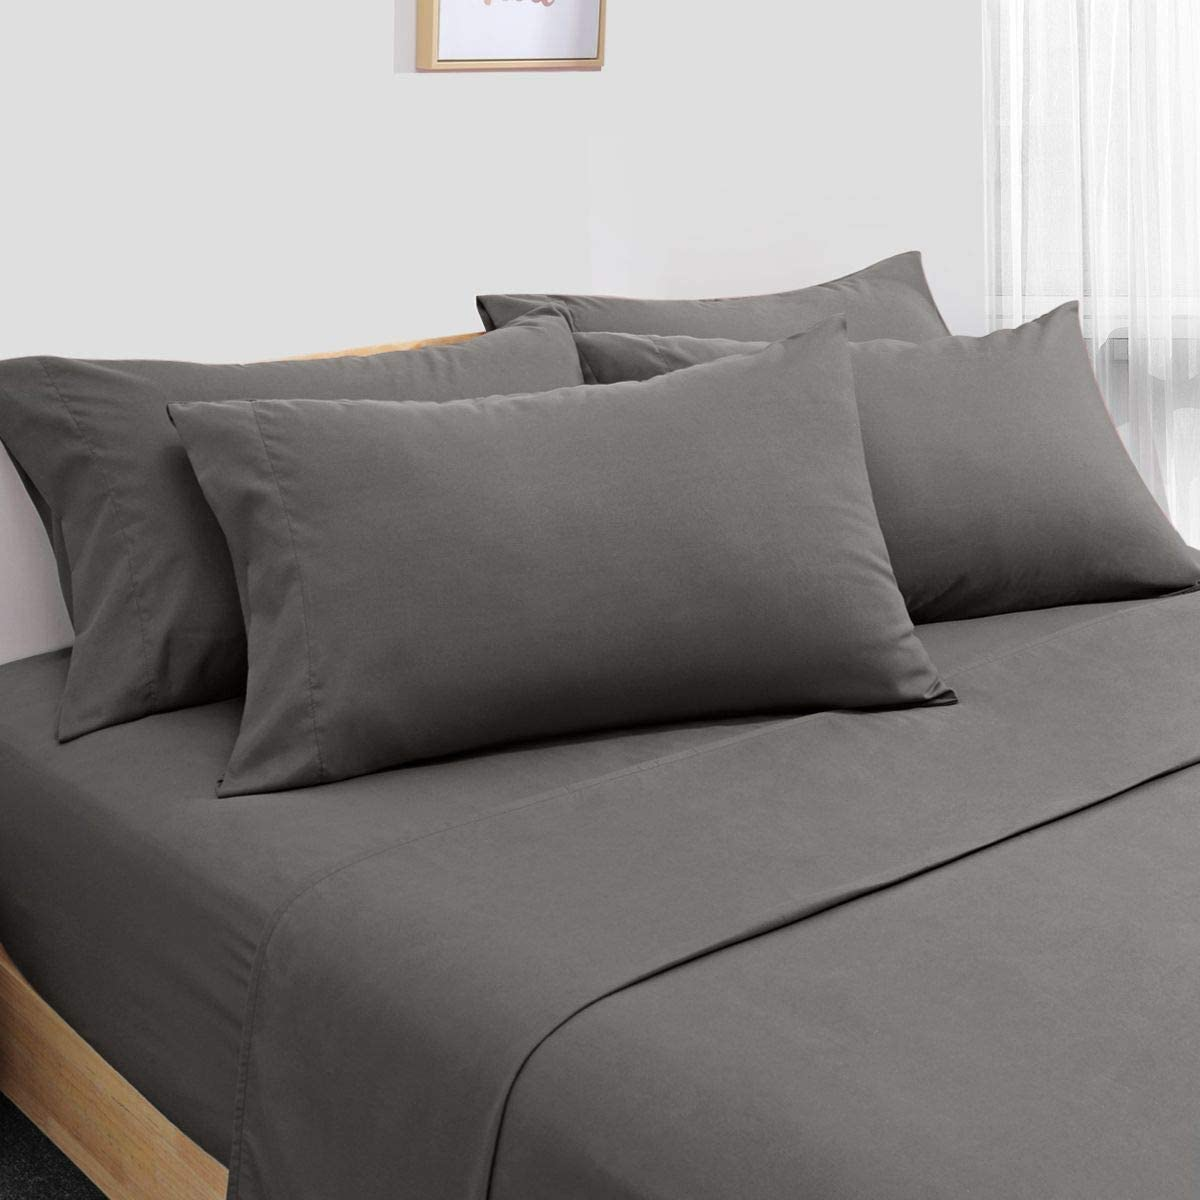 HOMEIDEAS 6 Piece Bed Sheets Set Extra Soft Brushed Microfiber 1800 Bedding Sheets Deep Pocket, Wrinkle & Fade Free (King,Deep Gray)